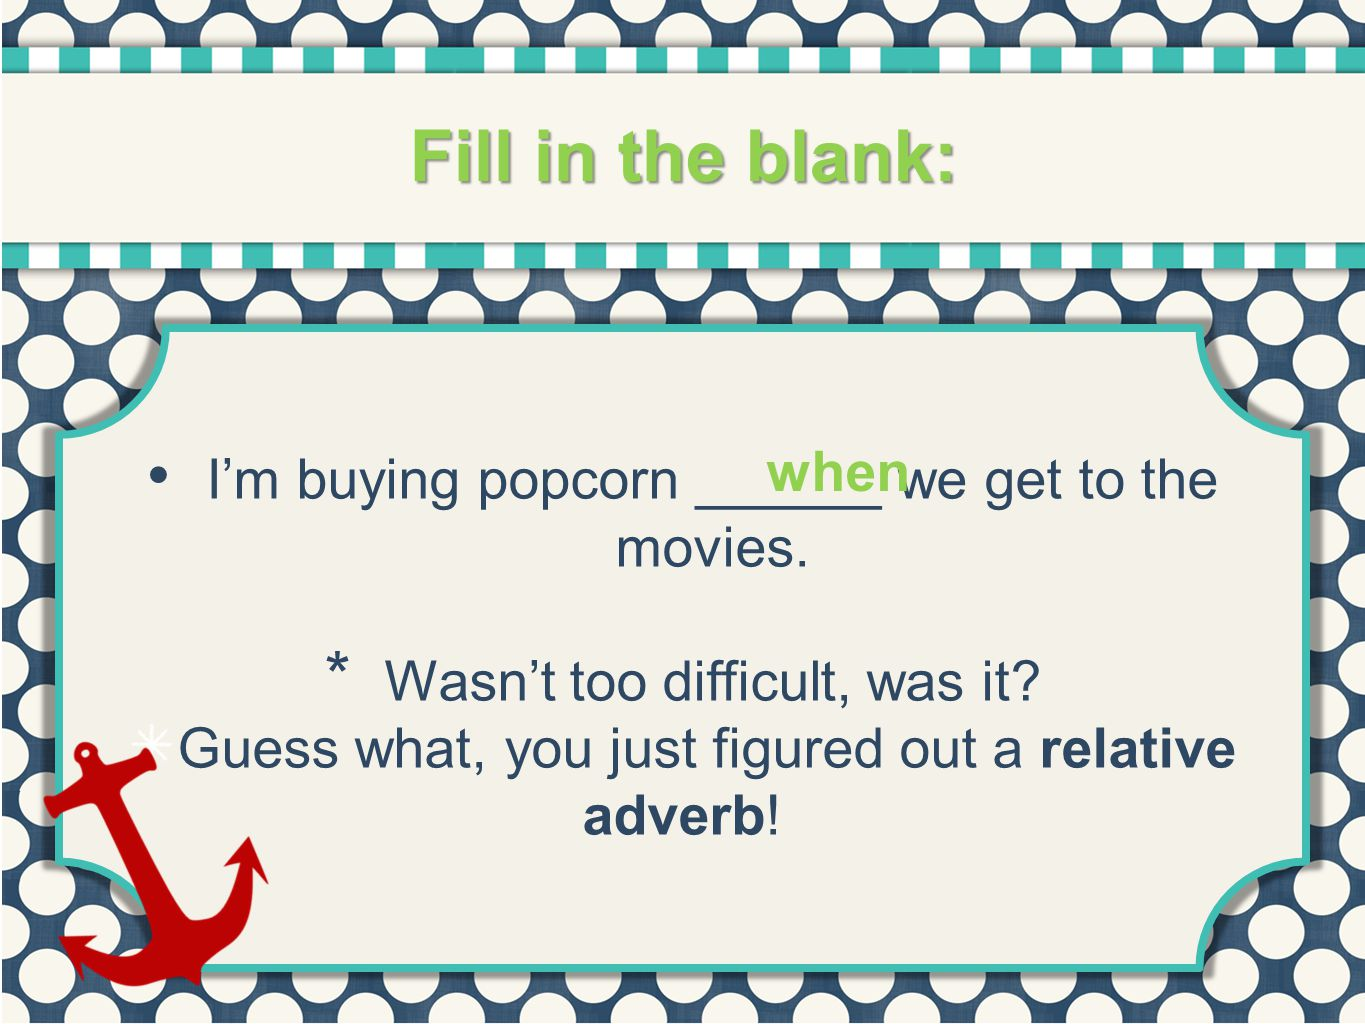 Fill in the blank: when. I'm buying popcorn ______ we get to the movies. Wasn't too difficult, was it